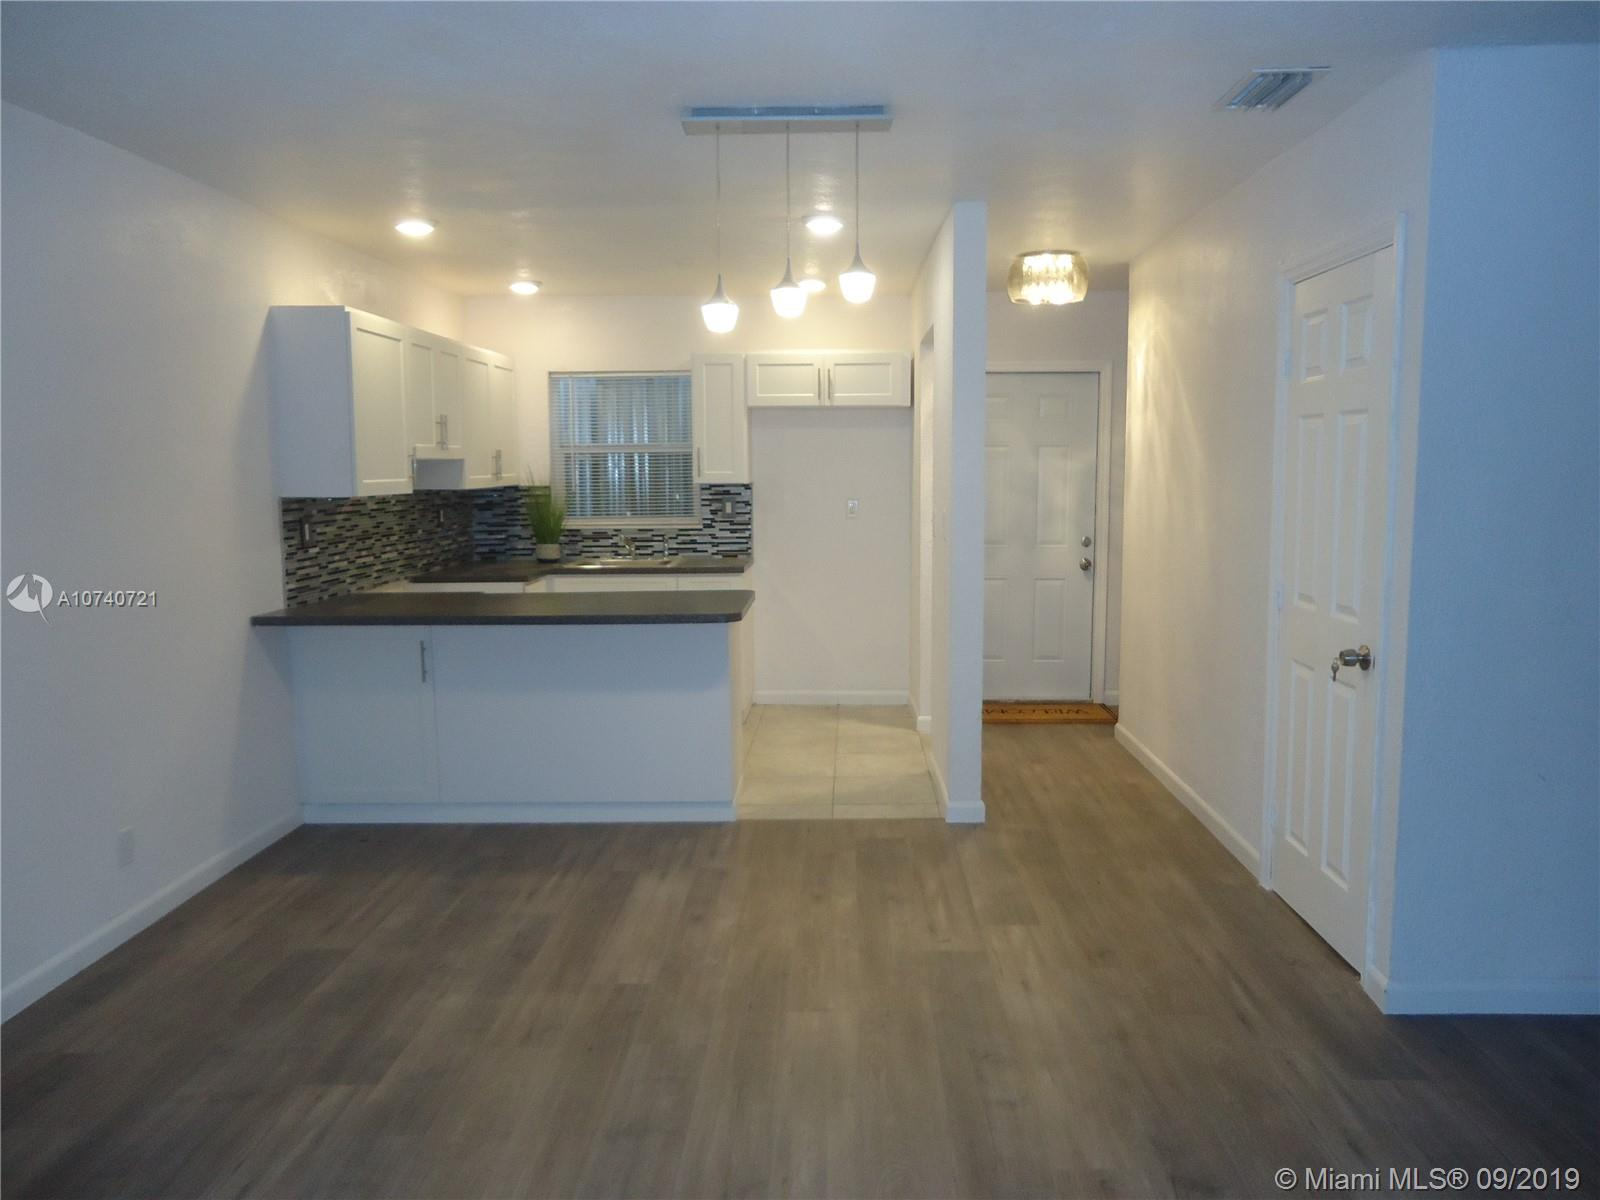 960 N W 24th Ave  For Sale A10740721, FL